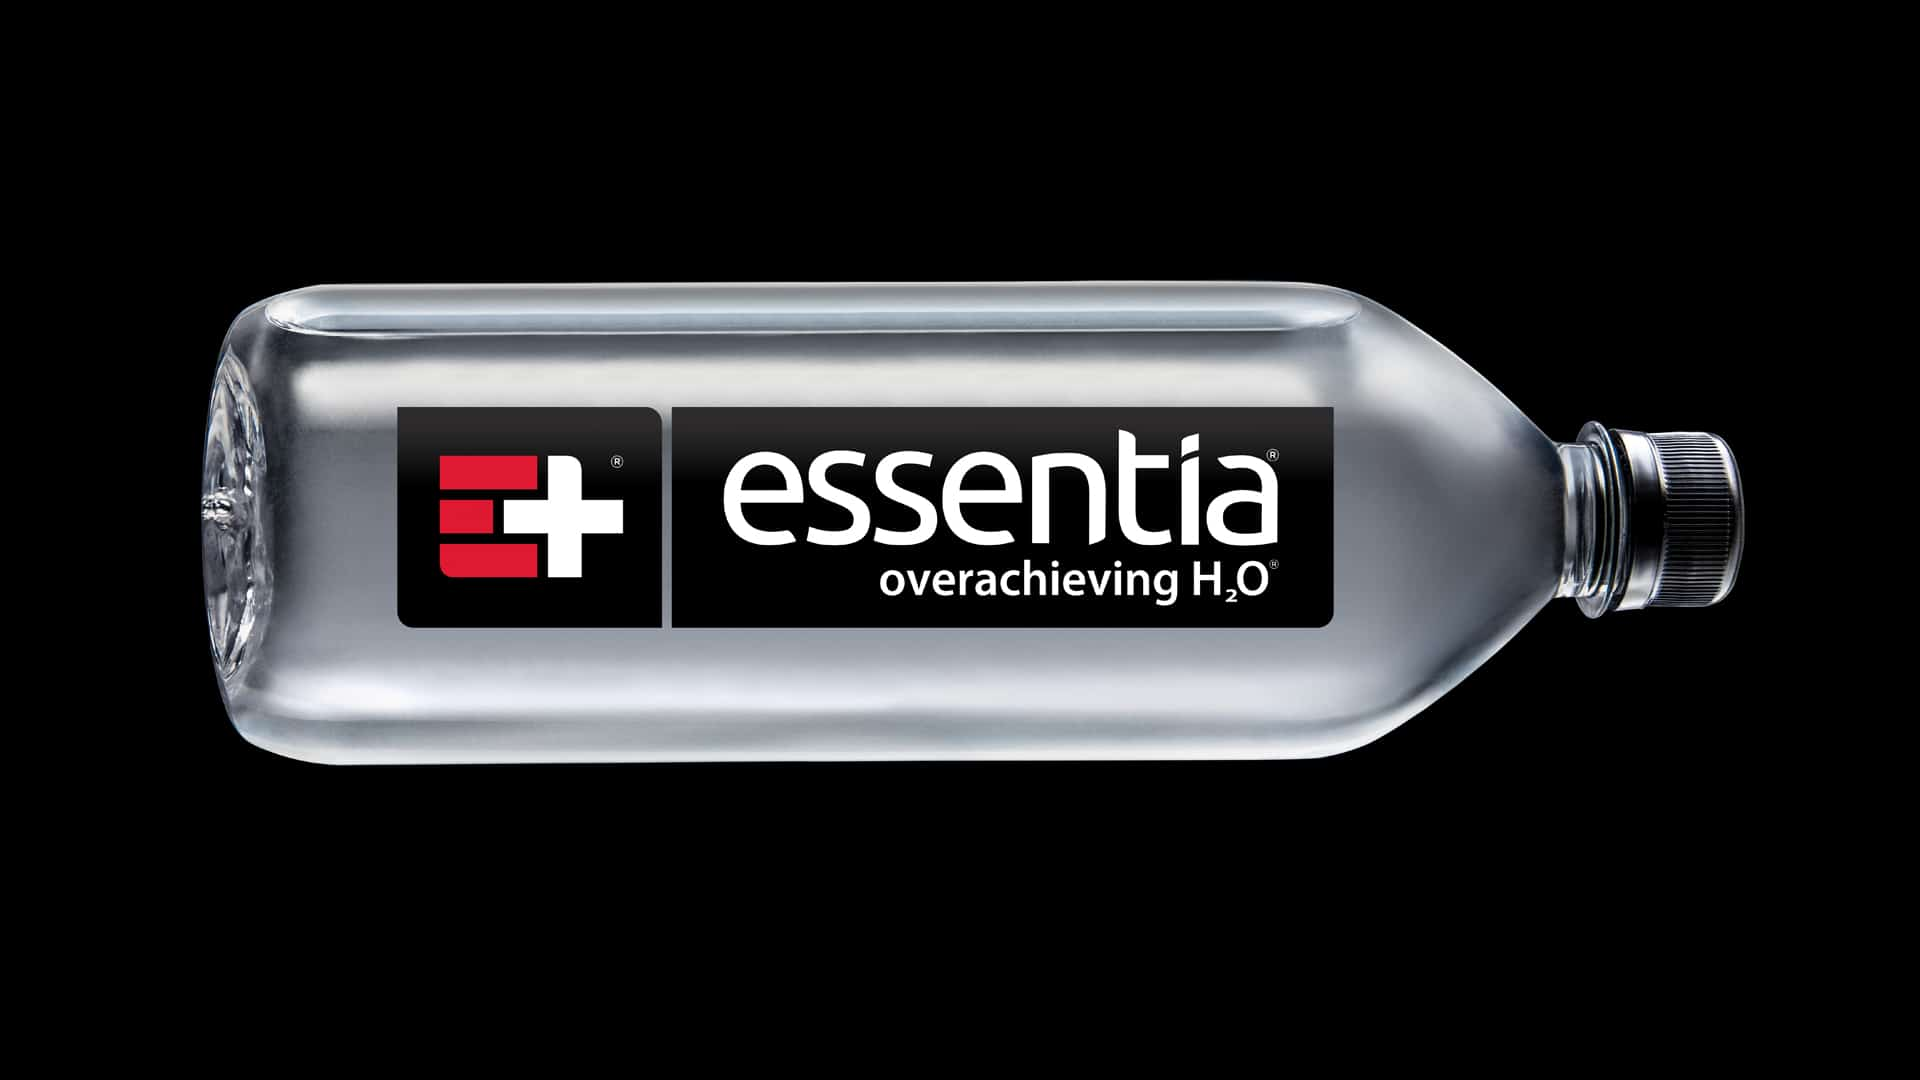 Essentia Water - Overachieving H2O